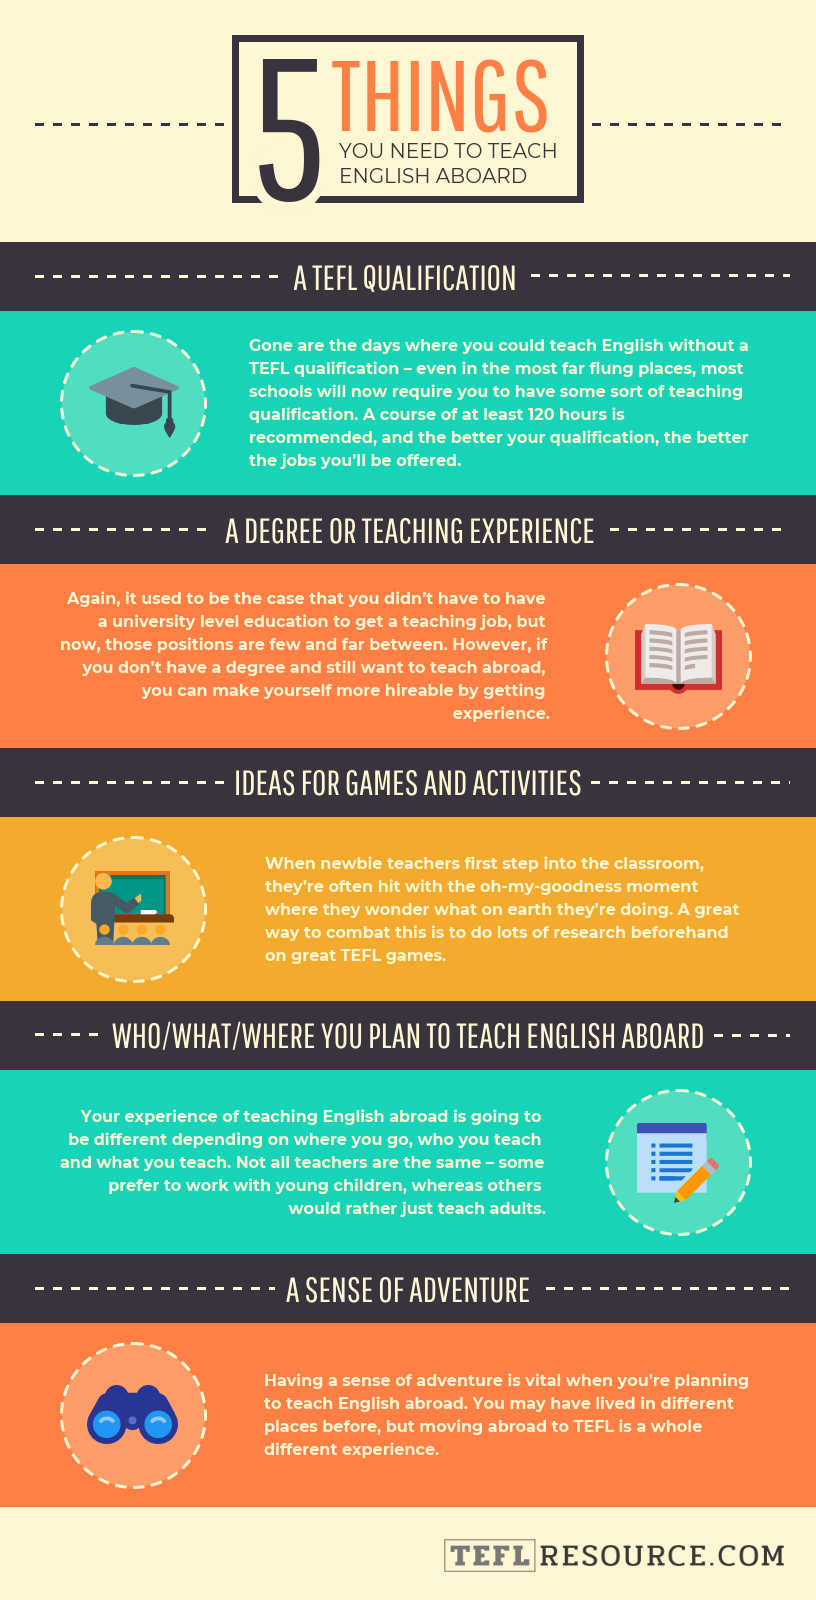 5 Things You Need to Teach English Aboard